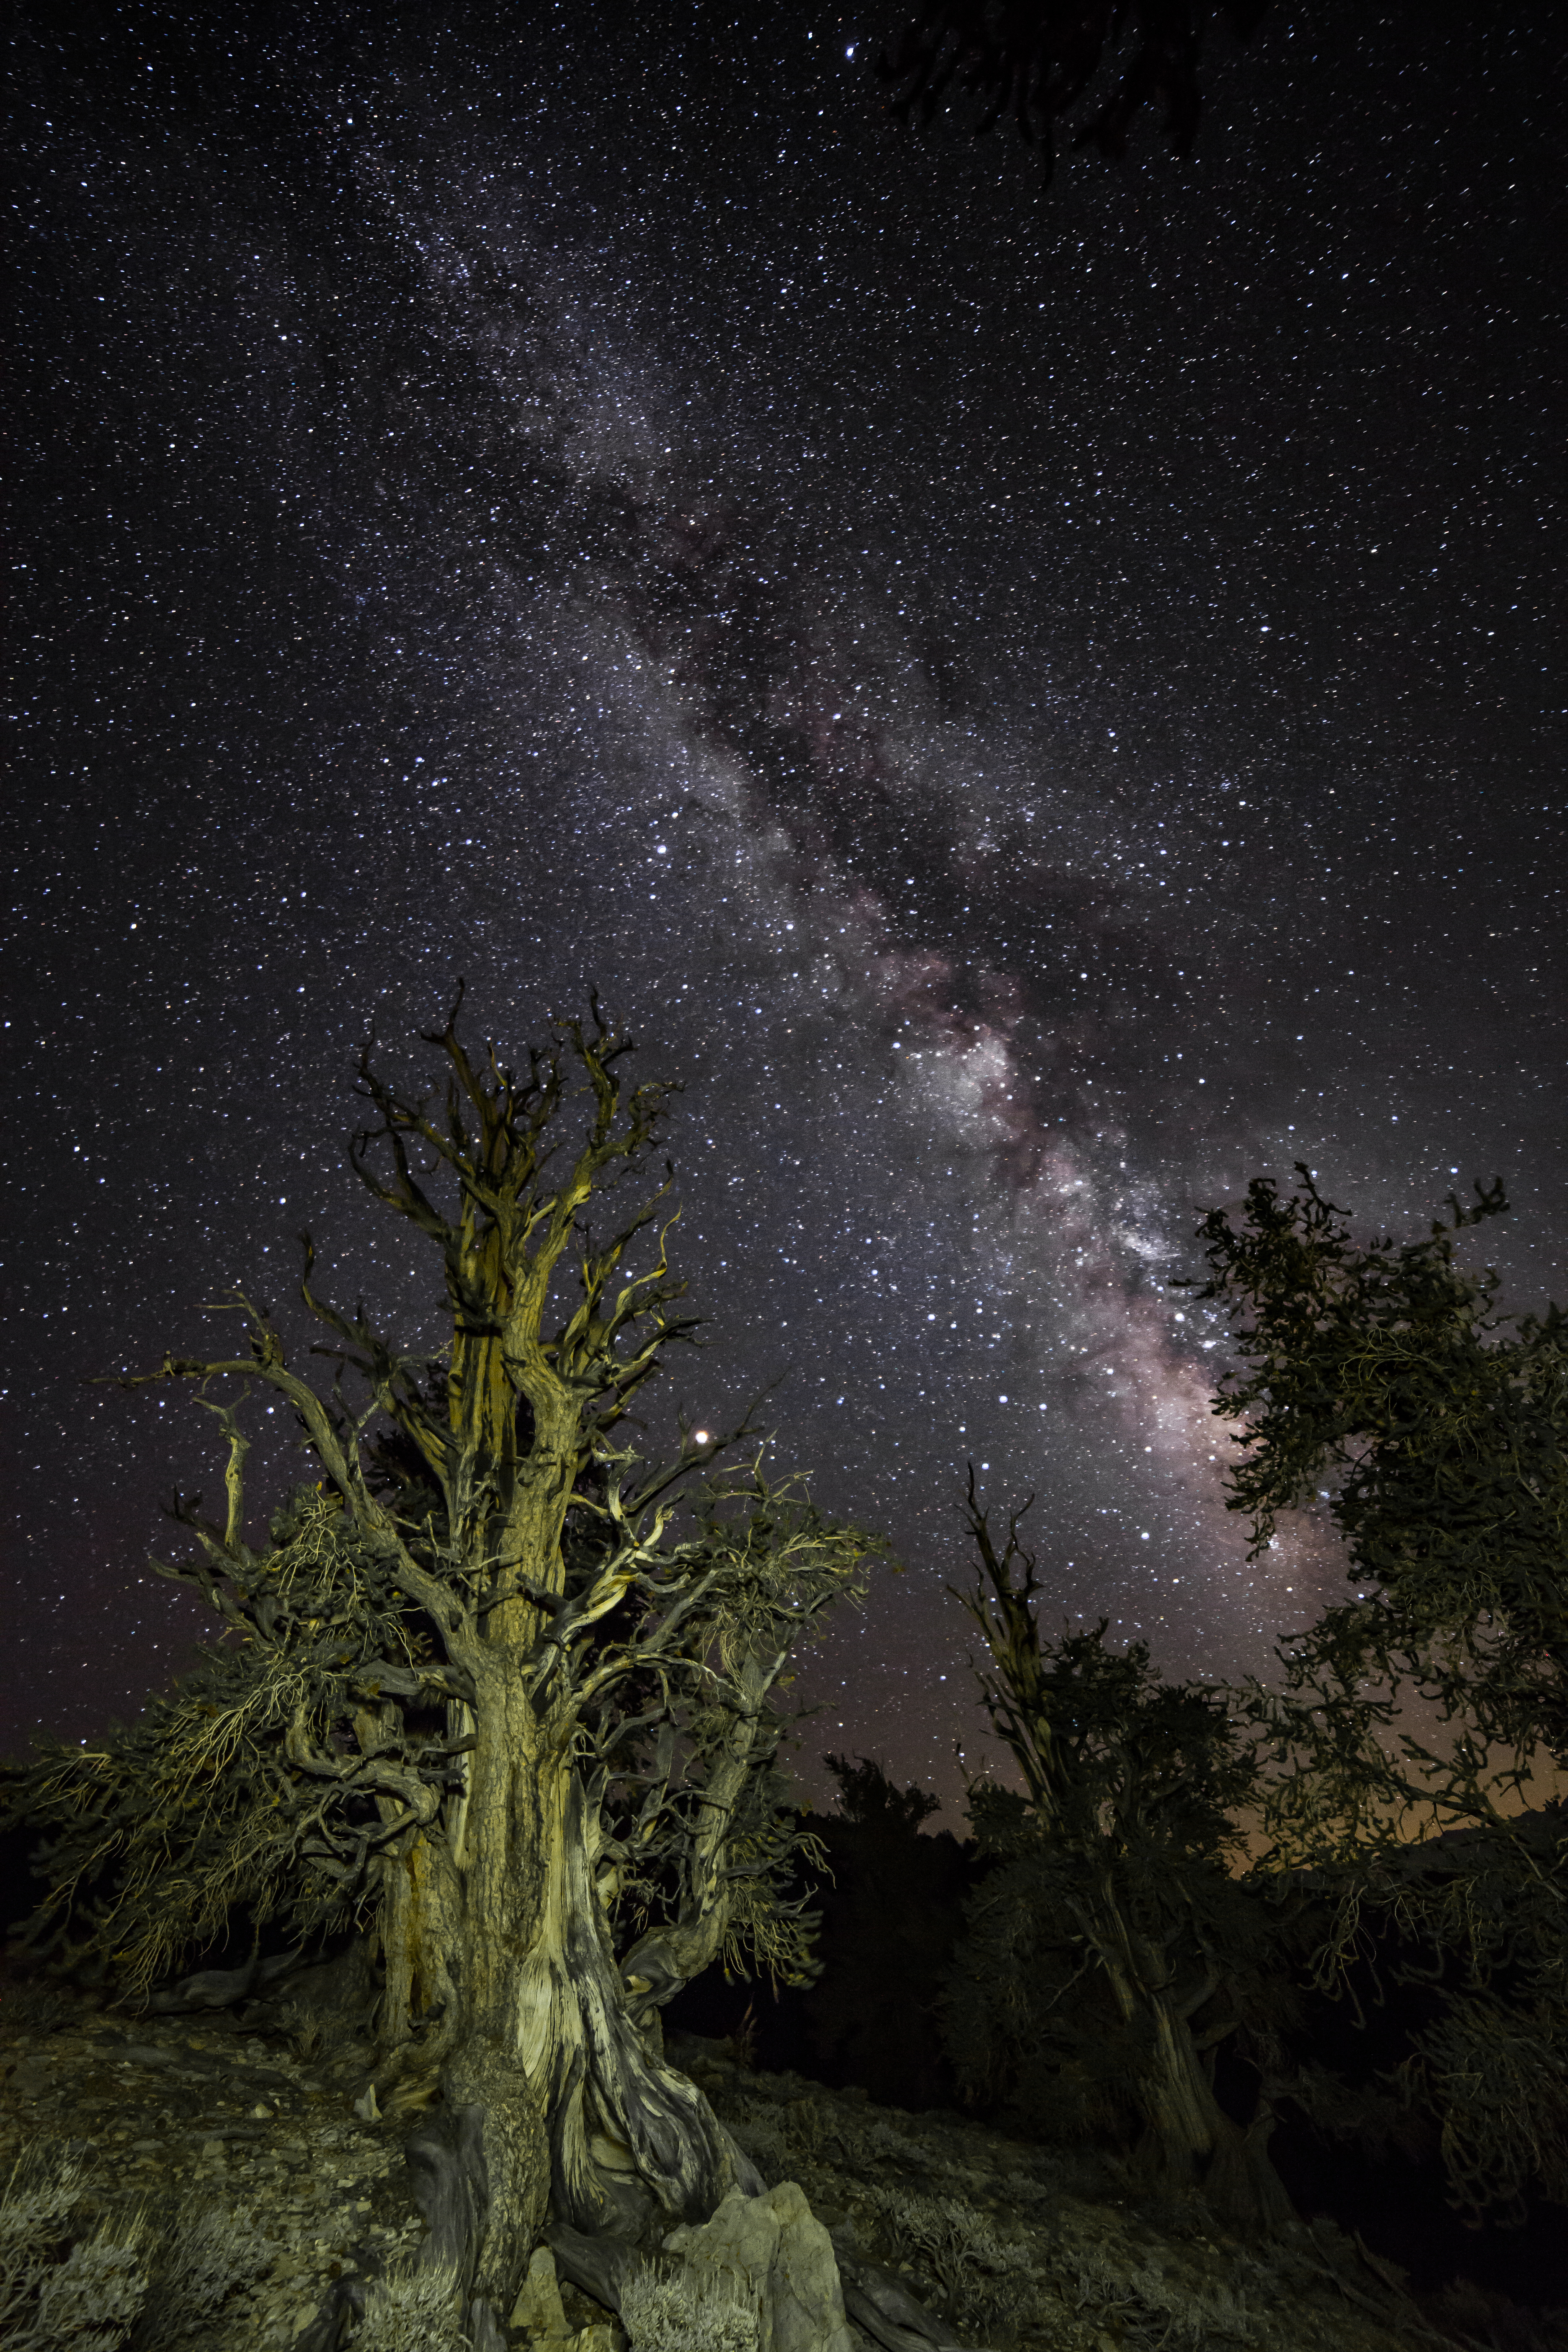 Milkyway, Ancient Bristlecone Pine